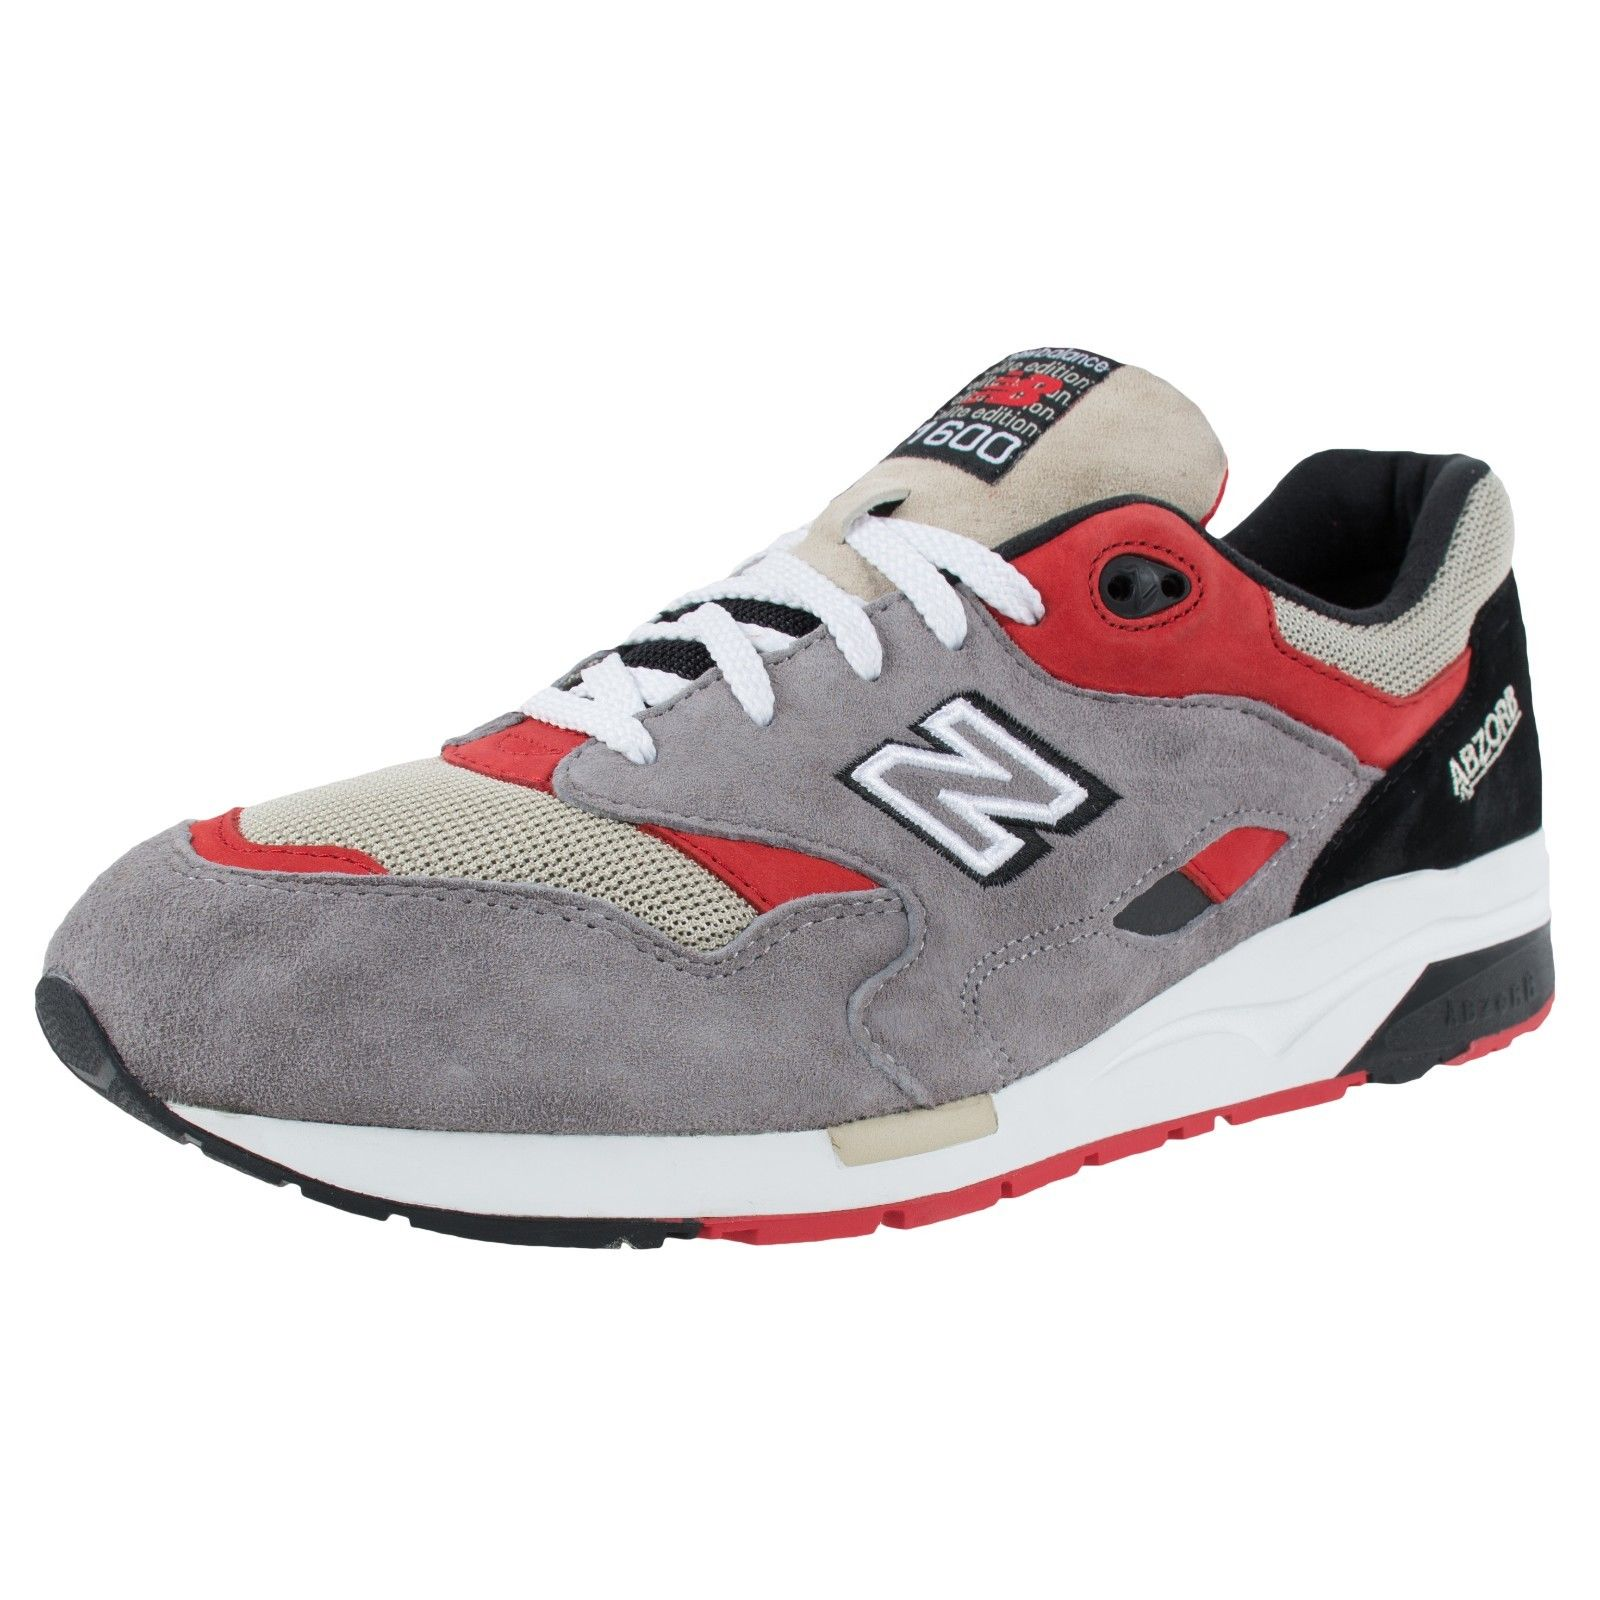 new balance 1600 running shoe